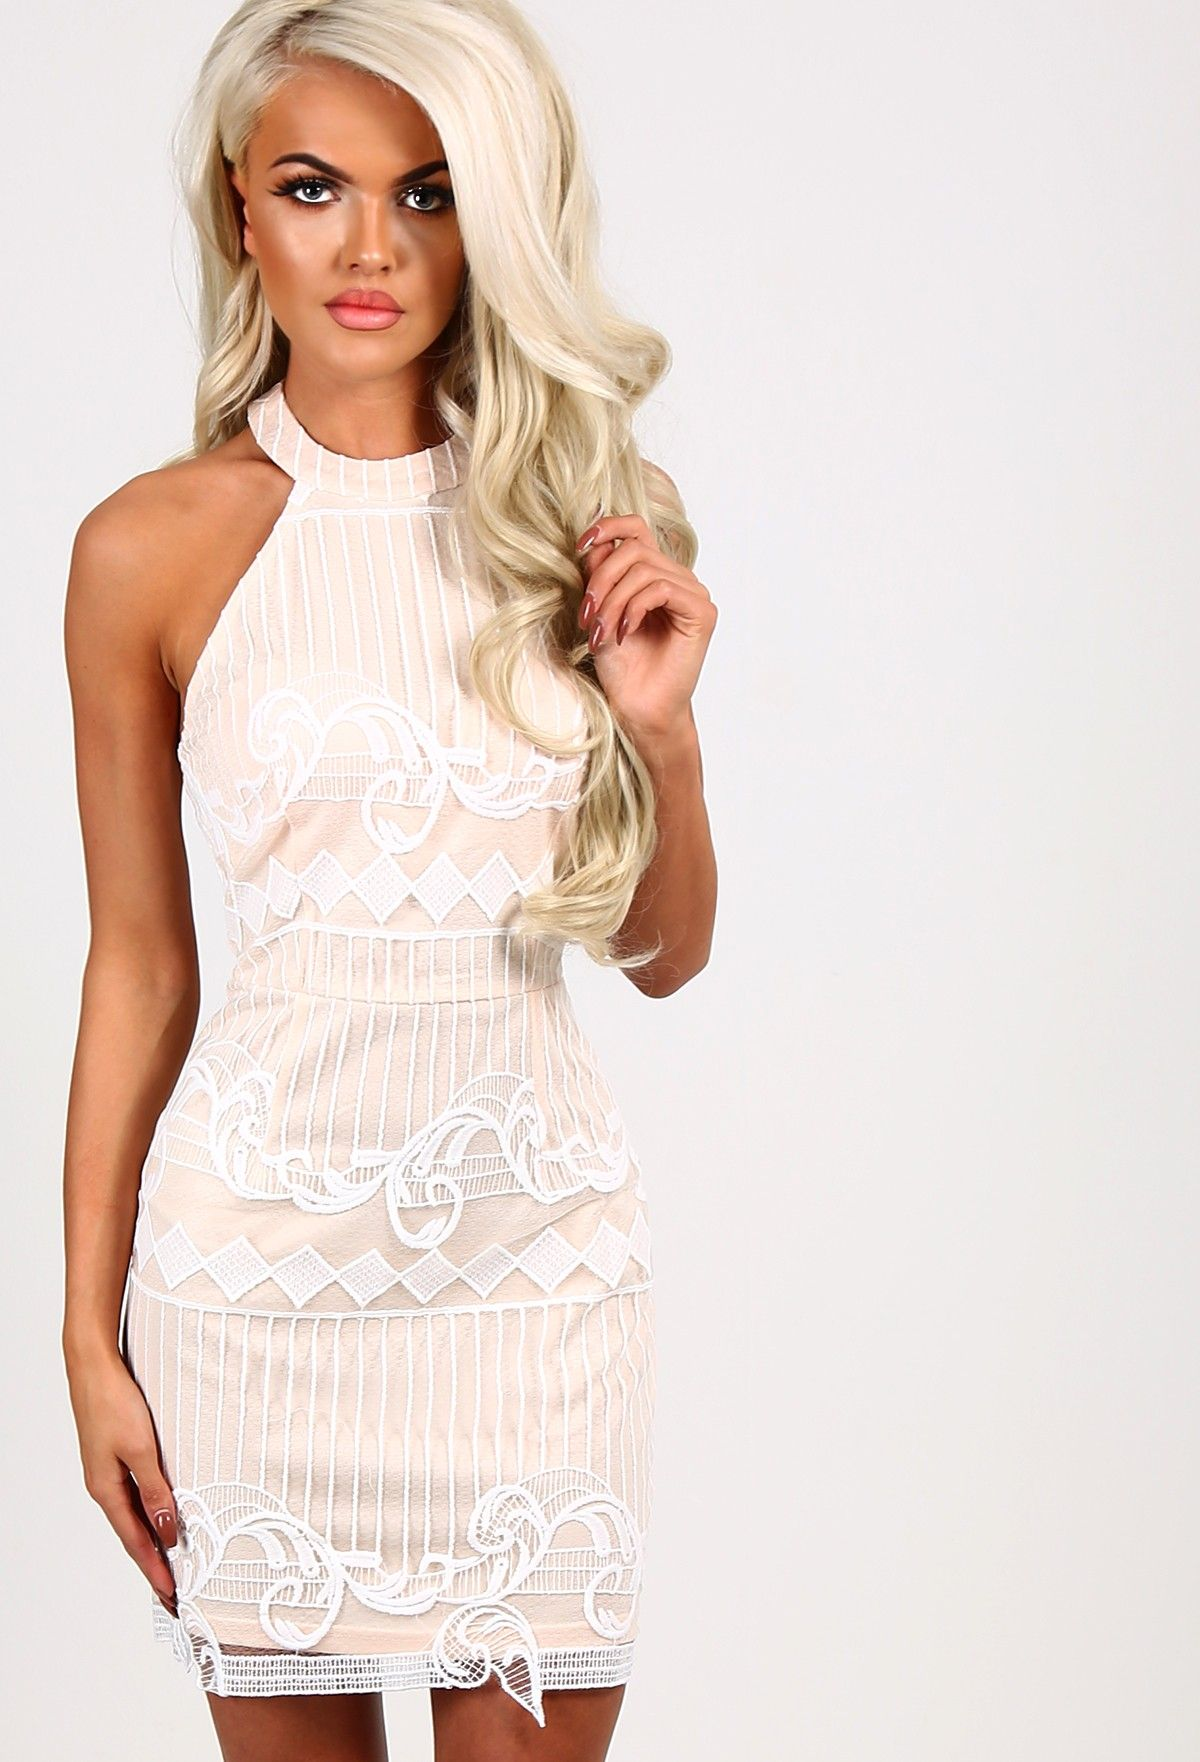 Look gorgeously girly in this nude halterneck mini dress! Featuring nude lining, white lace overlay and a concealed zip at the back. Team with high heels and a clutch to finish the look. ♥ ...